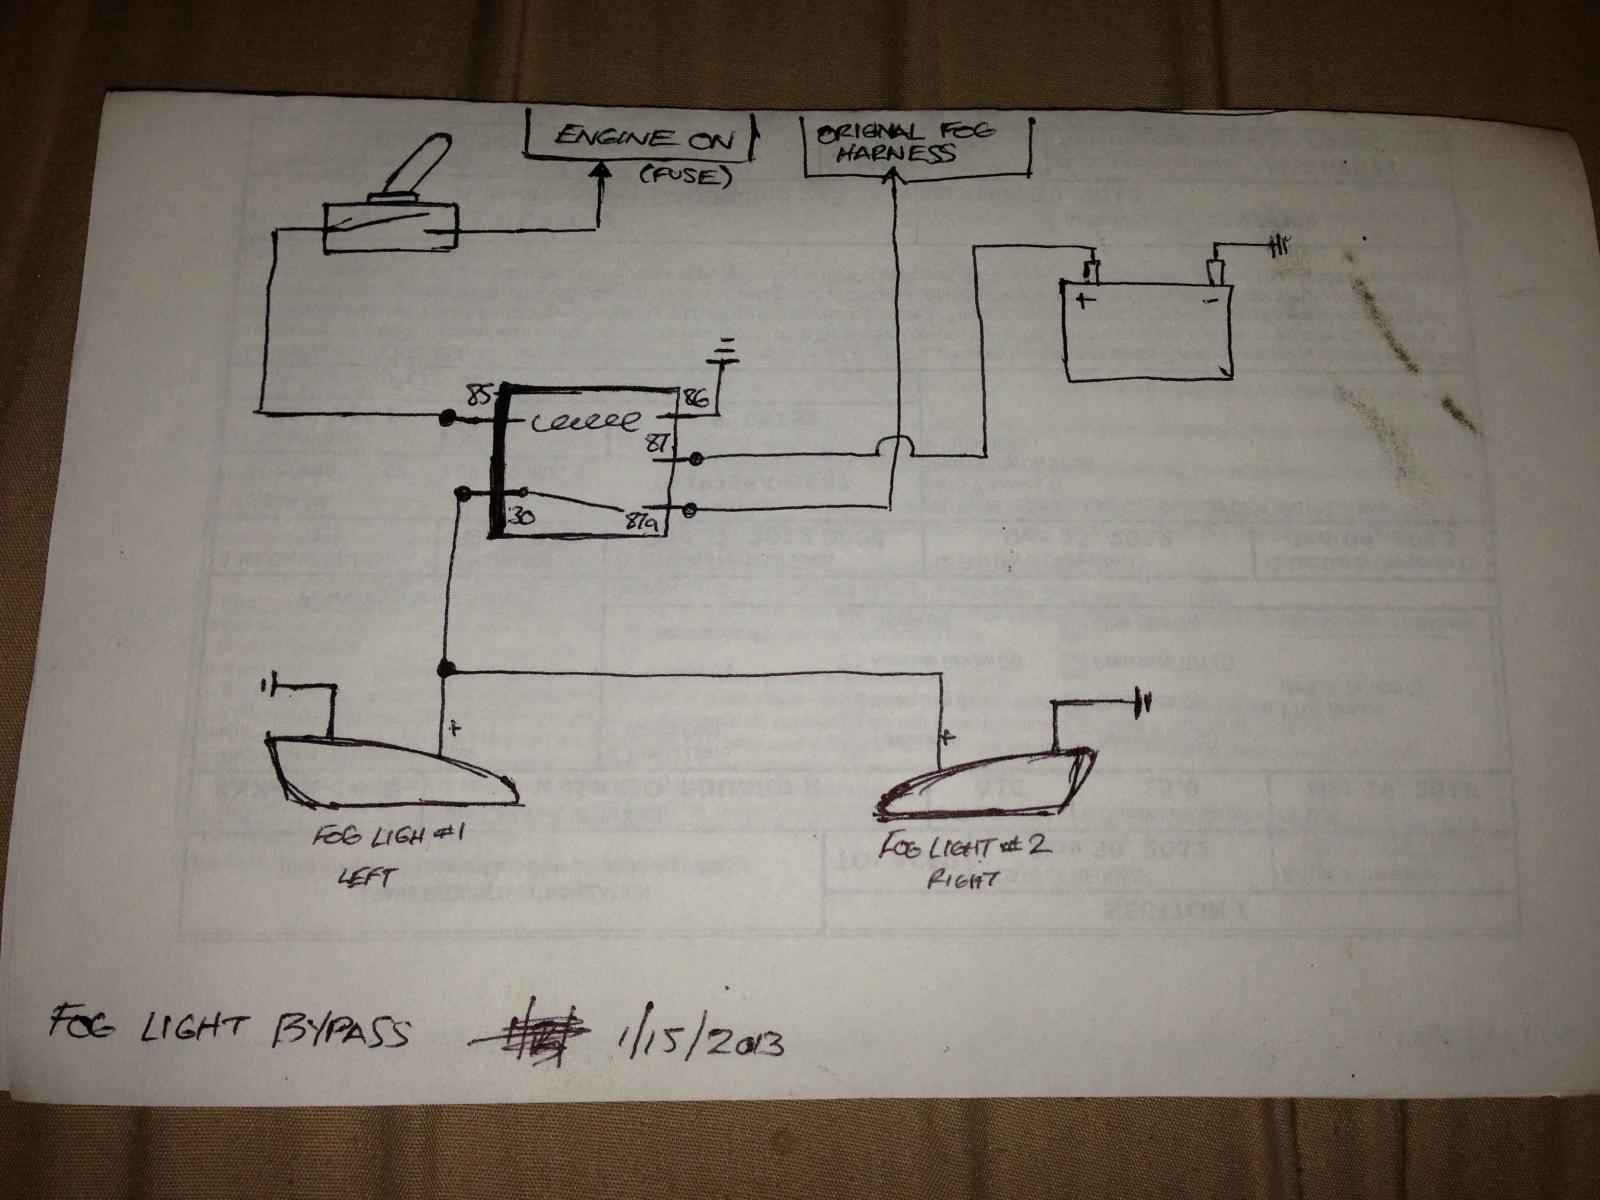 15418d1361164943 simple wiring diagram bypass foglights works w o headlights w highbeams img_1242 simple headlight wiring diagram simple wiring circuits \u2022 free gmc truck electrical wiring diagrams at bayanpartner.co